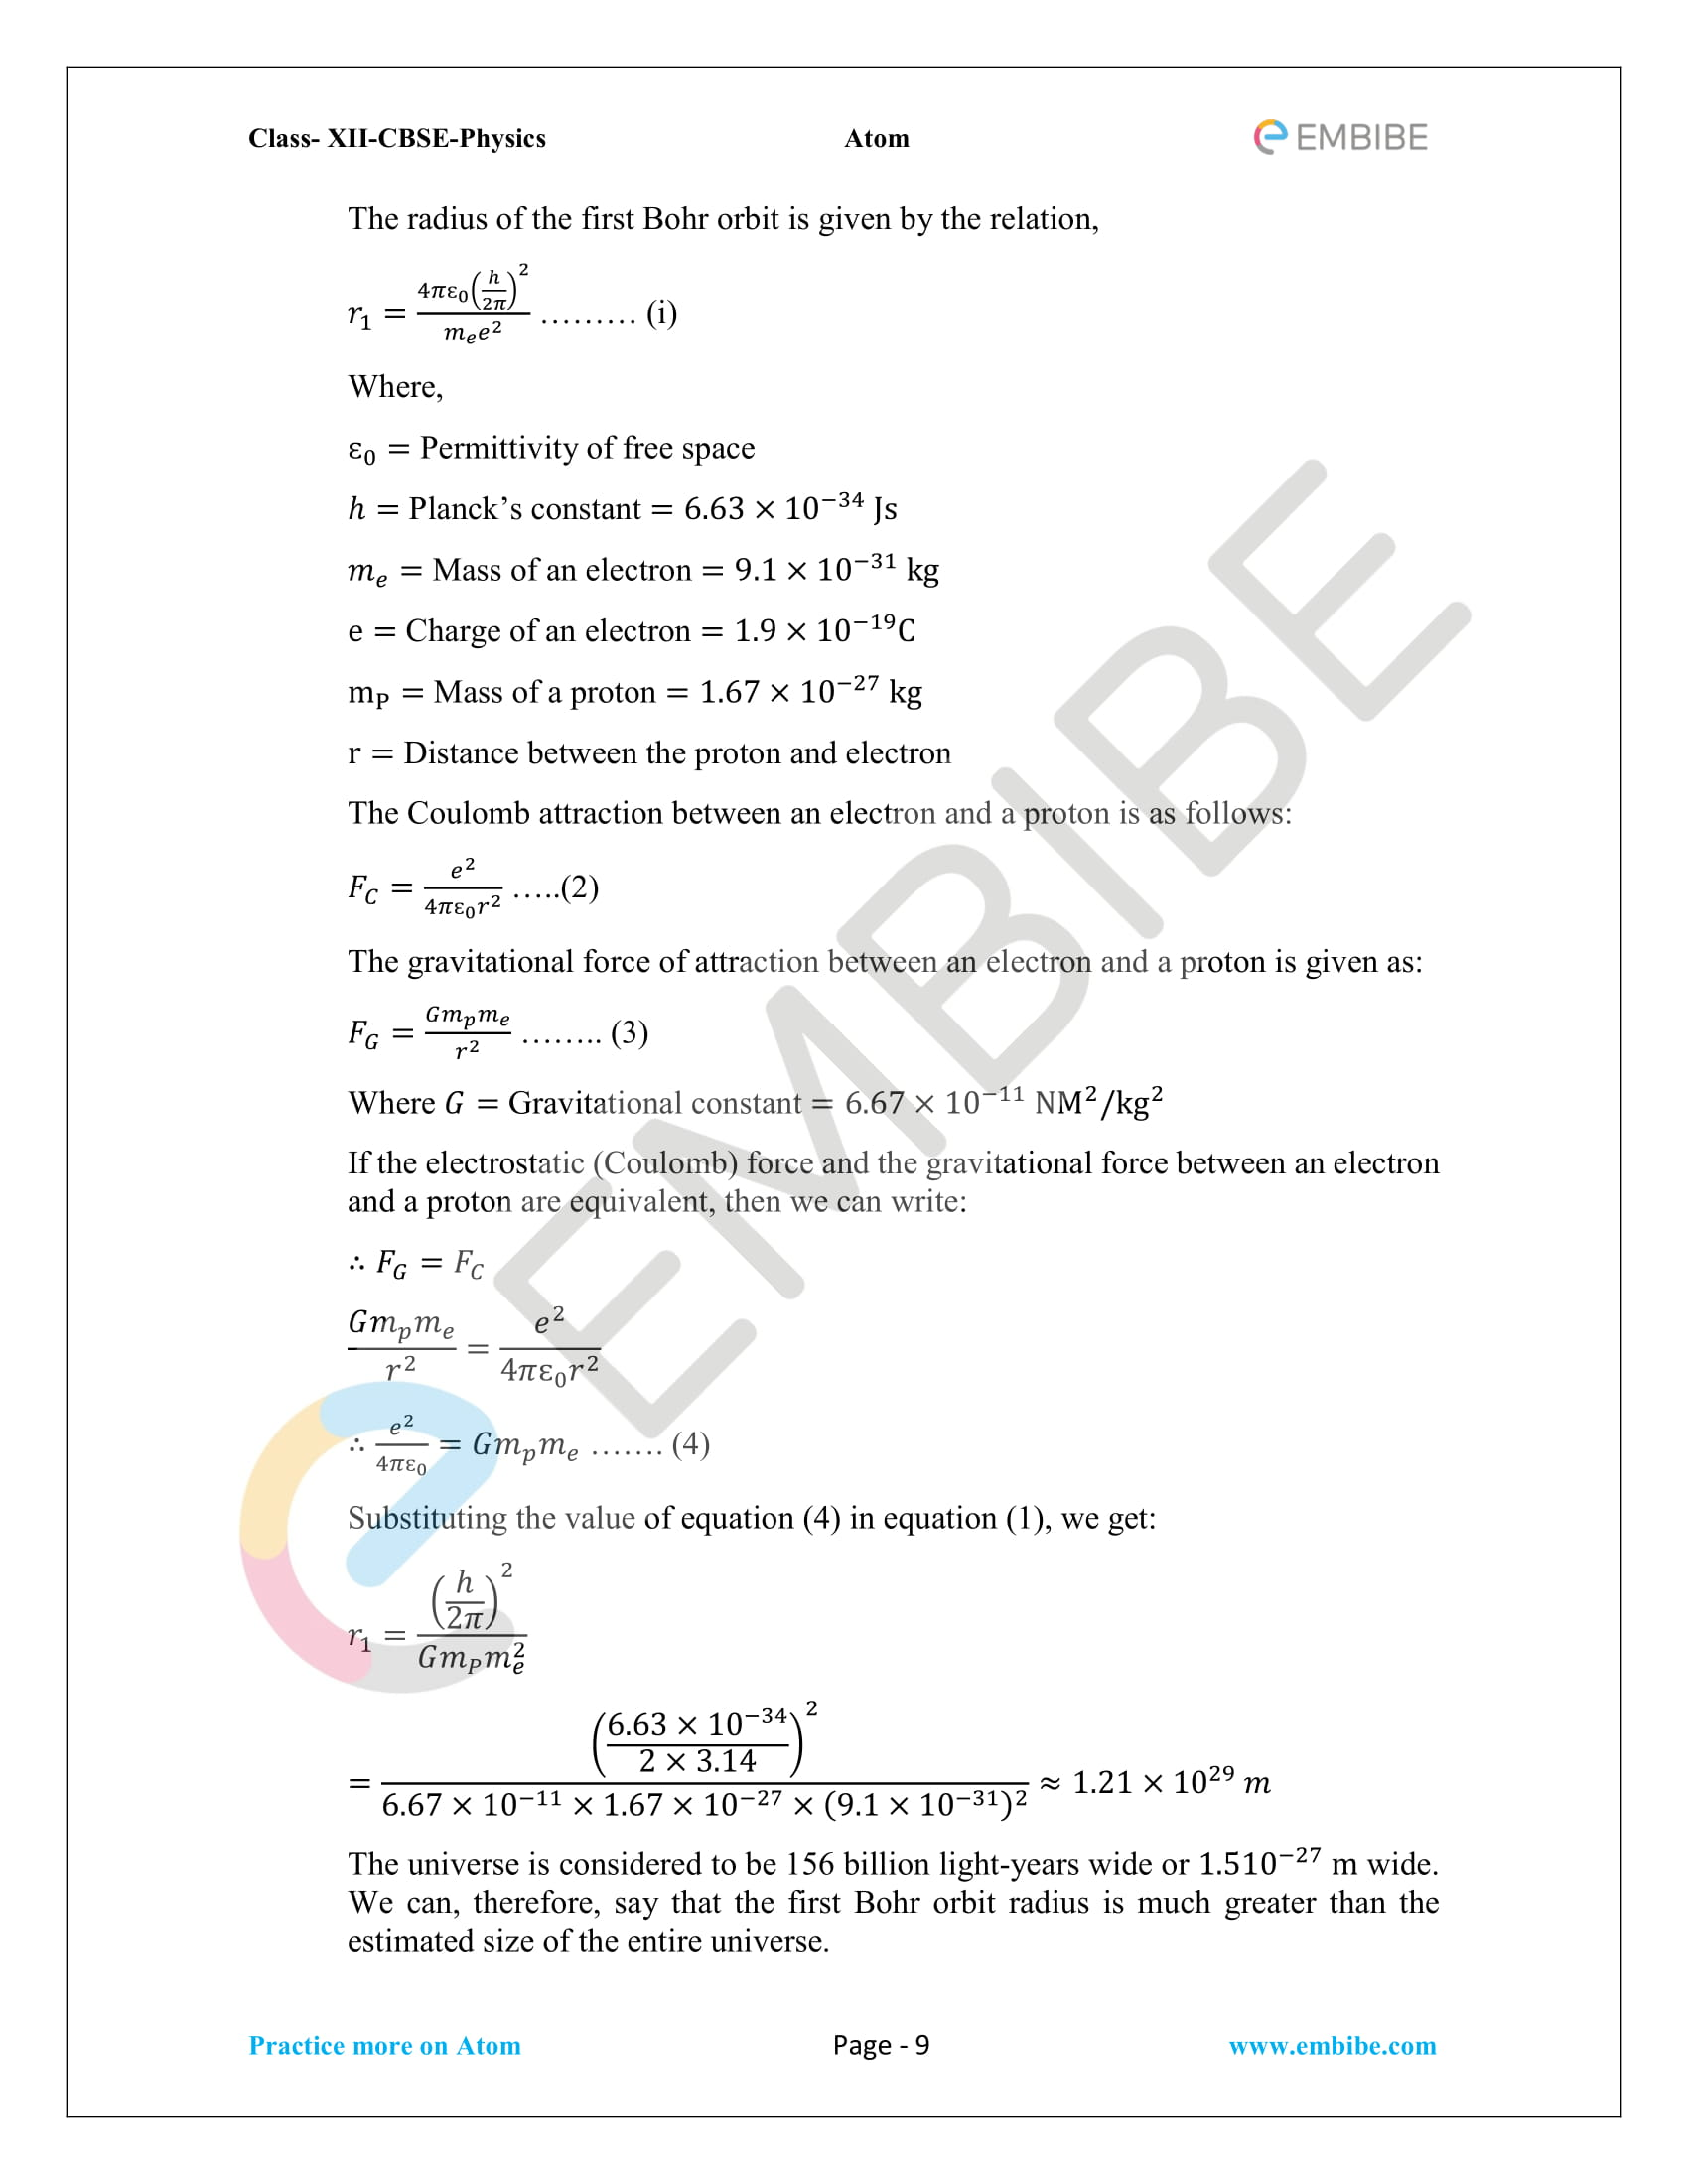 NCERT Solutions For Class 12 Physics Chapter 12 PDF: Download Atoms